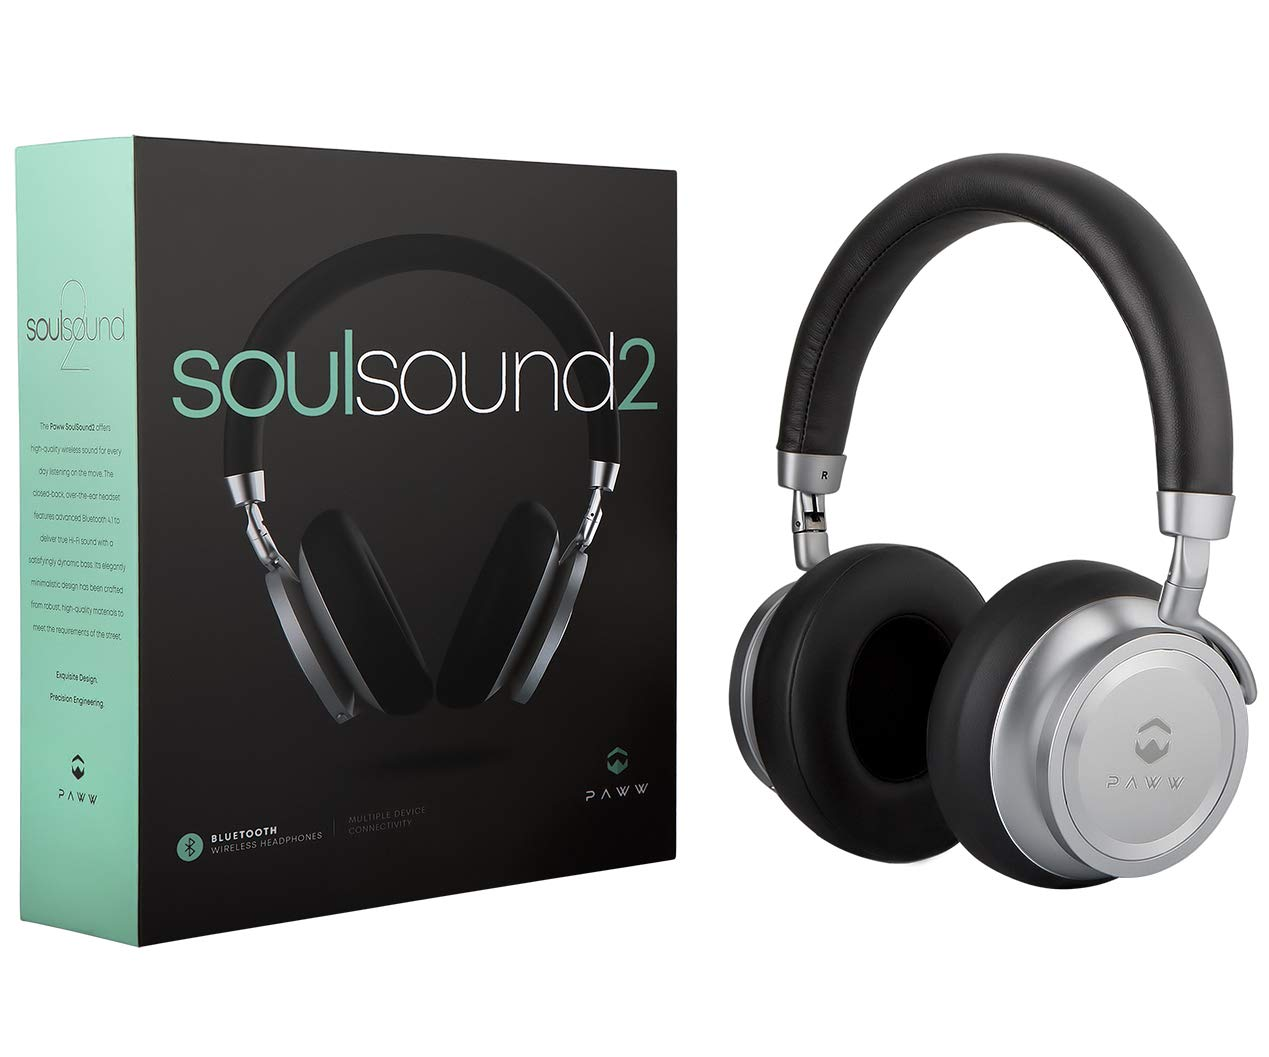 Paww SoulSound 2 Headphones - Over Ear Bluetooth Wireless Headphones - Bass Boost Button - 17 Hours Playtime - Foldable - Modern Fashion & Sound Quality Combined - for Enthusiasts & Audiophiles by Paww